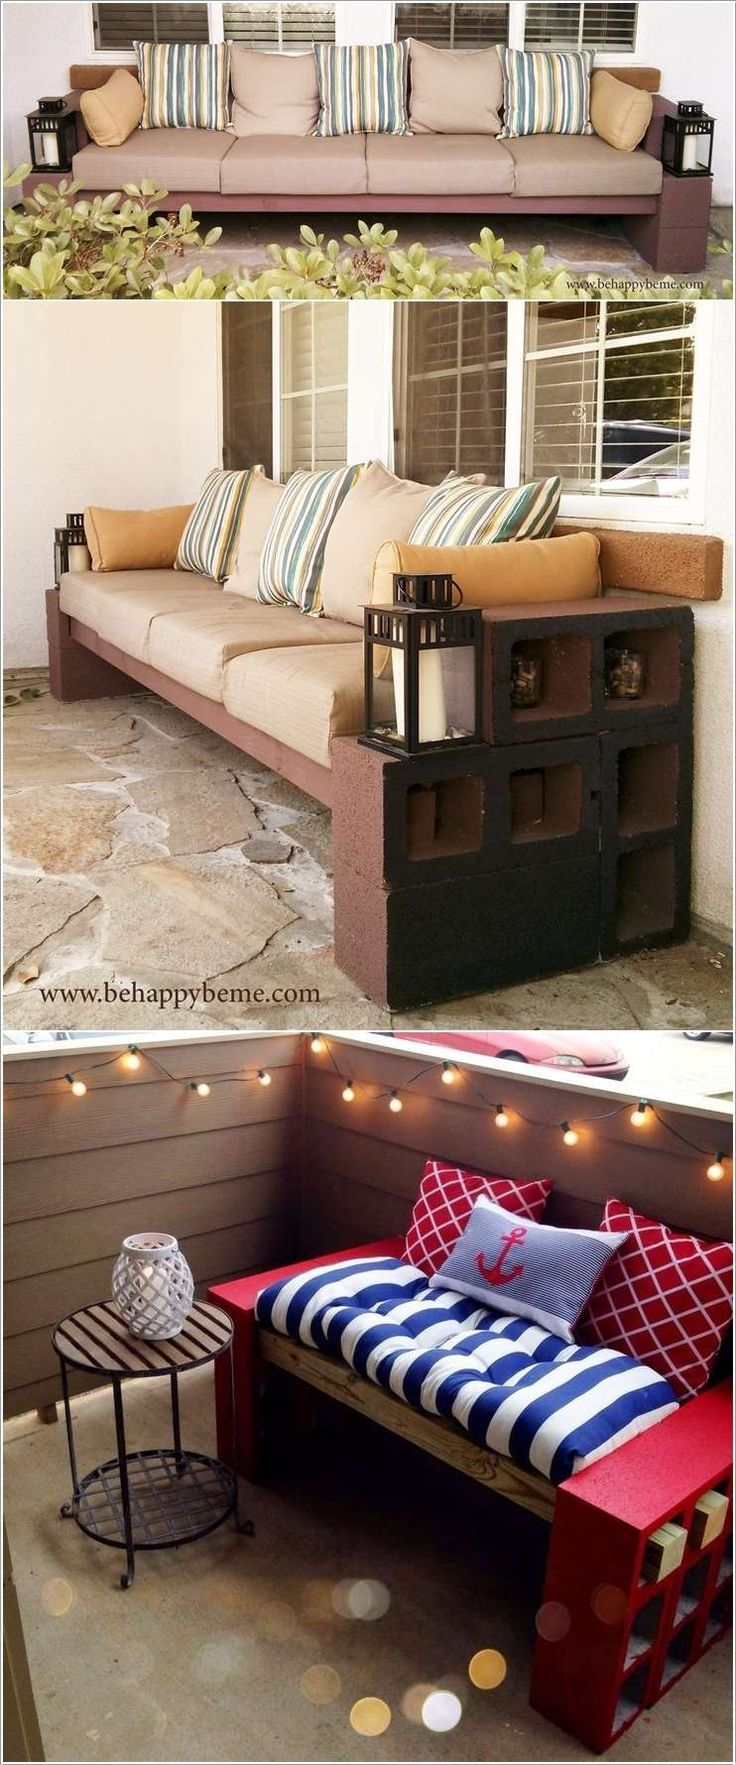 Design Cinder Block Table 10 diy cinder block garden ideas and projects concrete furniture concrete